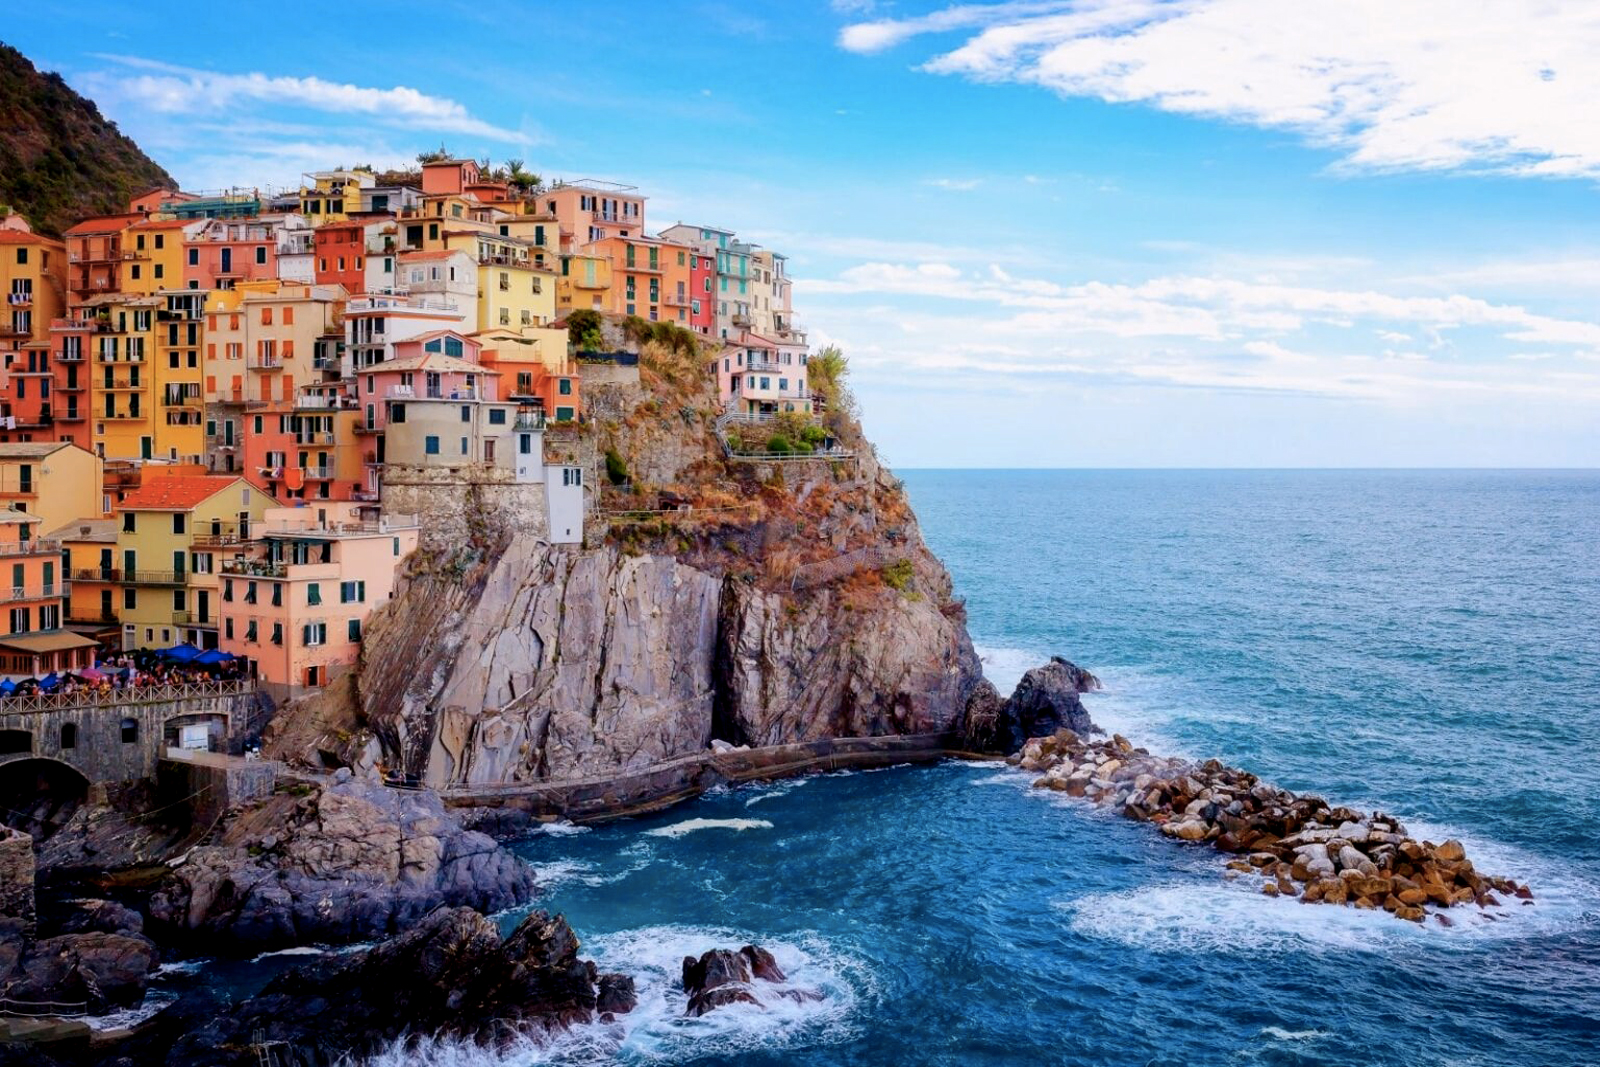 Northern-beauties-of-Italy-12-day-join-the-group